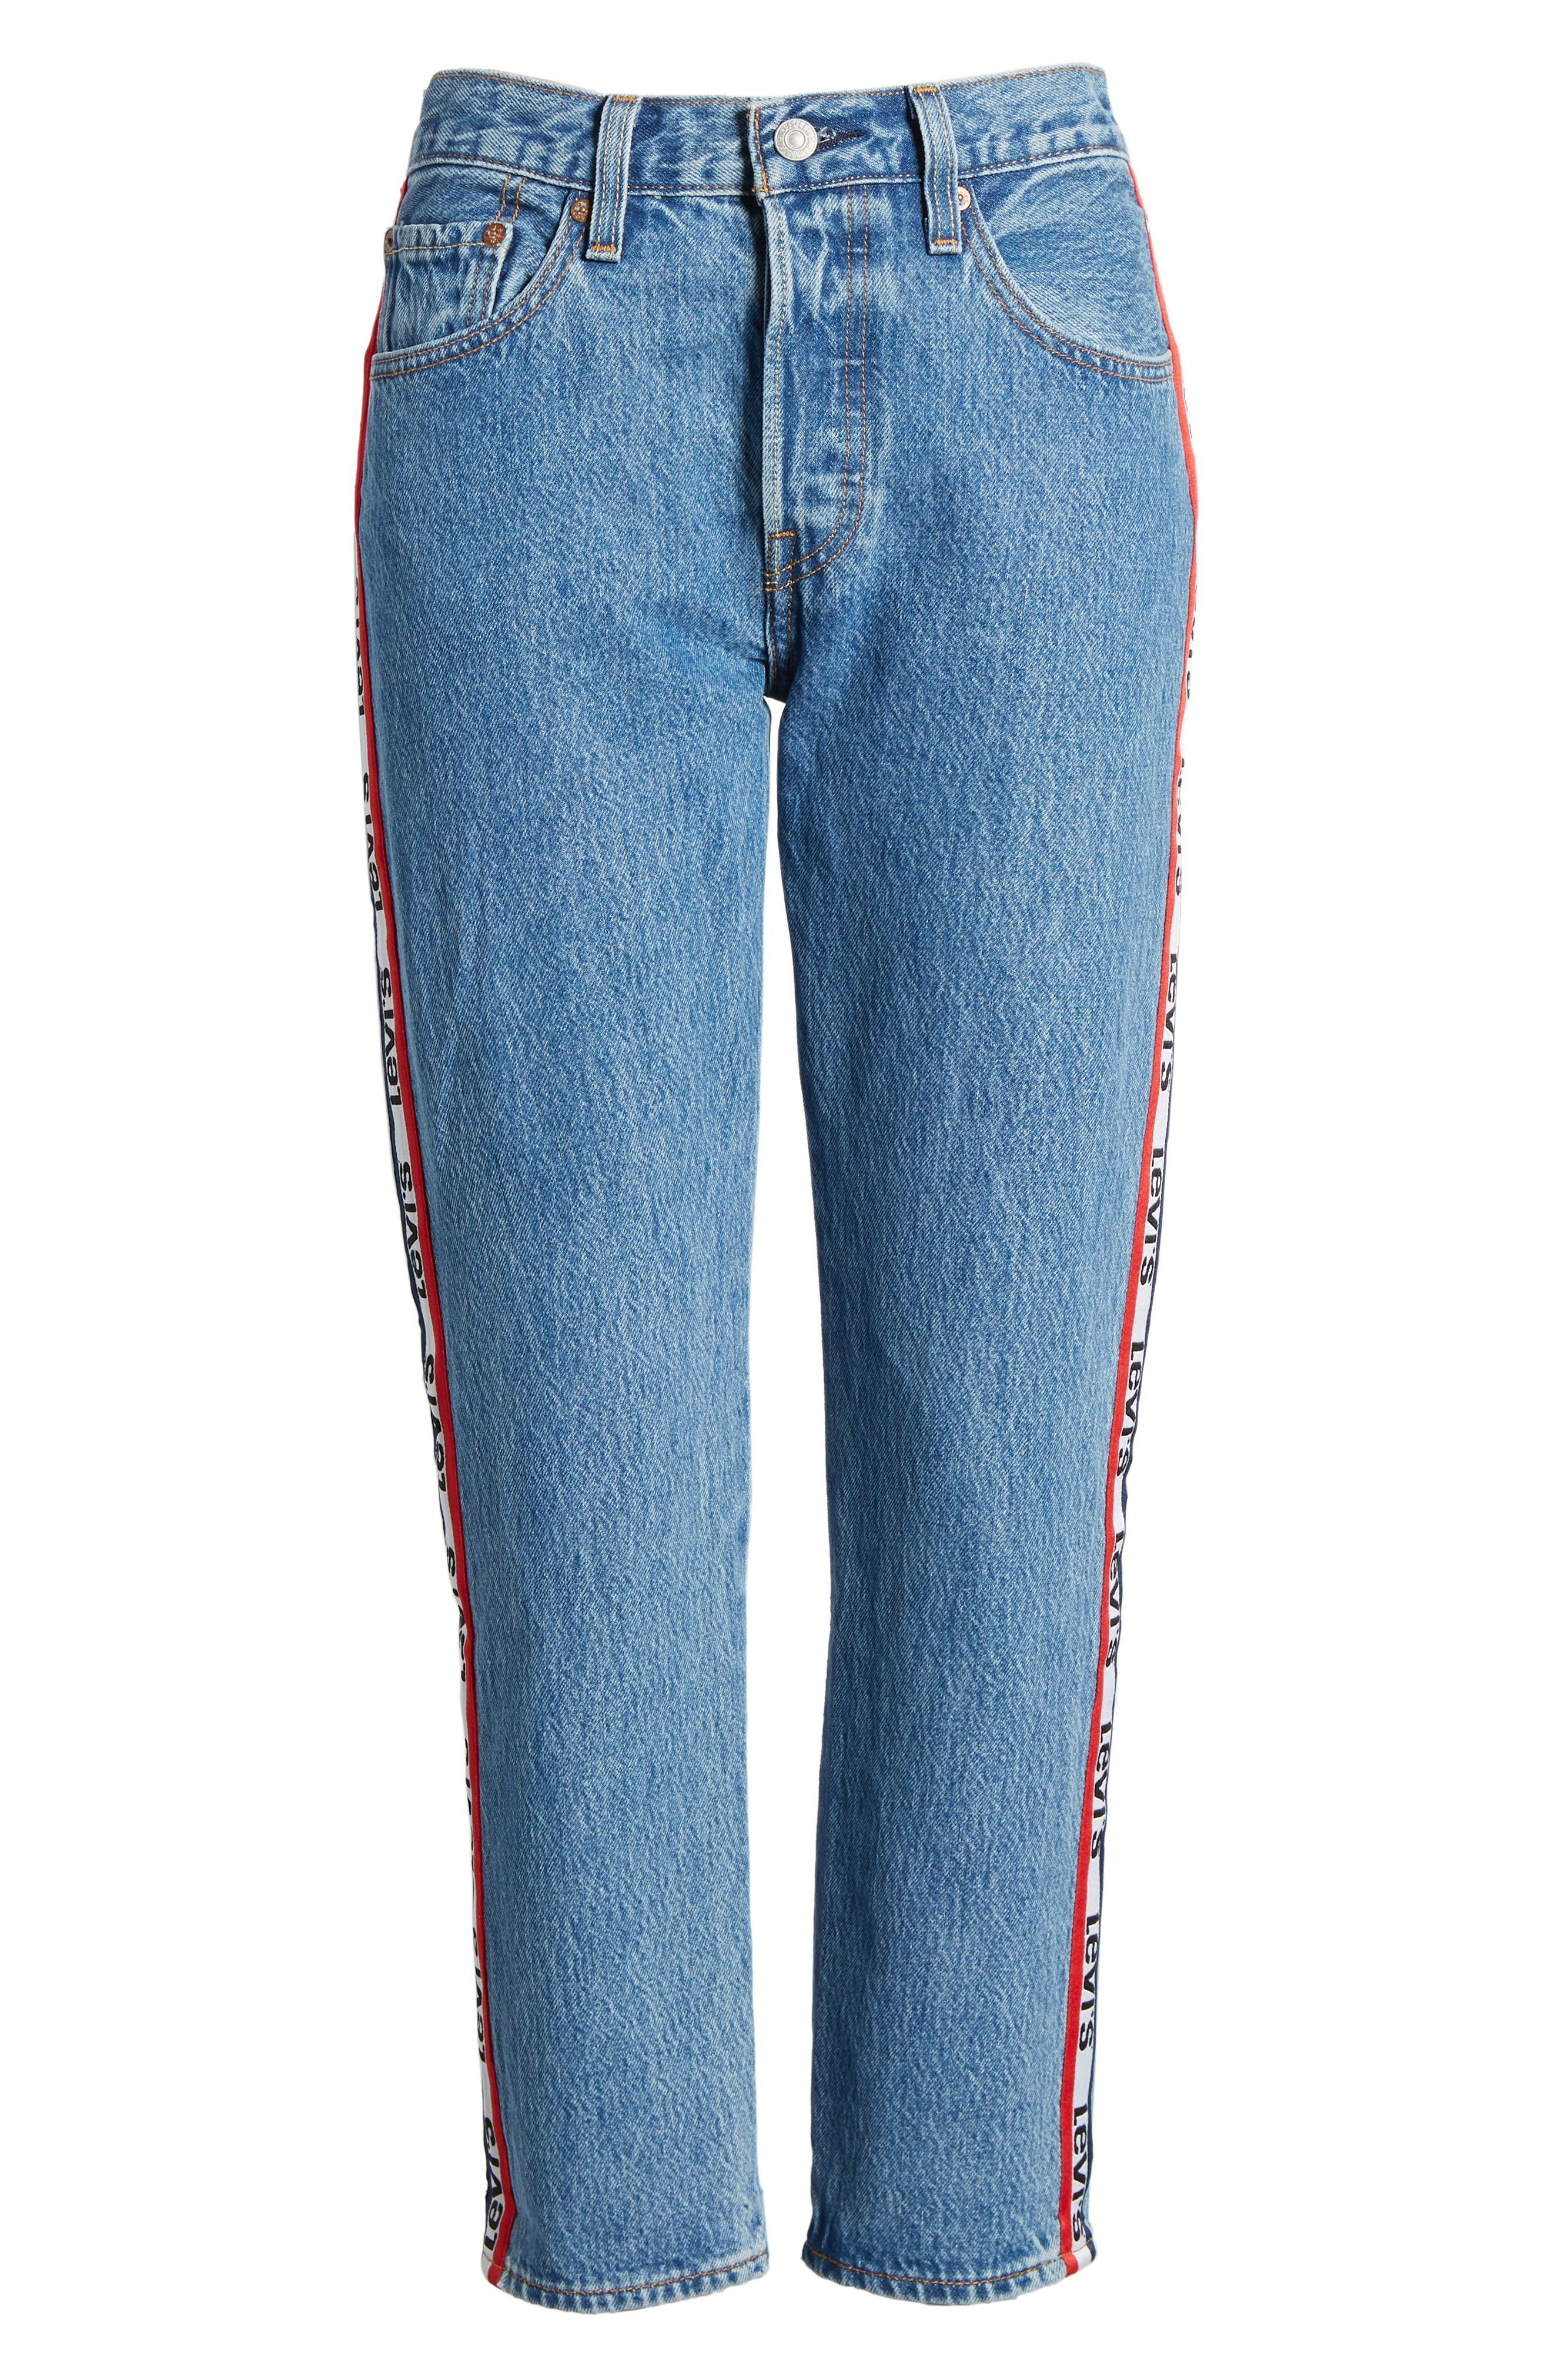 501 High Waist Crop Jeans,                             Alternate thumbnail 6, color,                             SPECTATOR SPORT